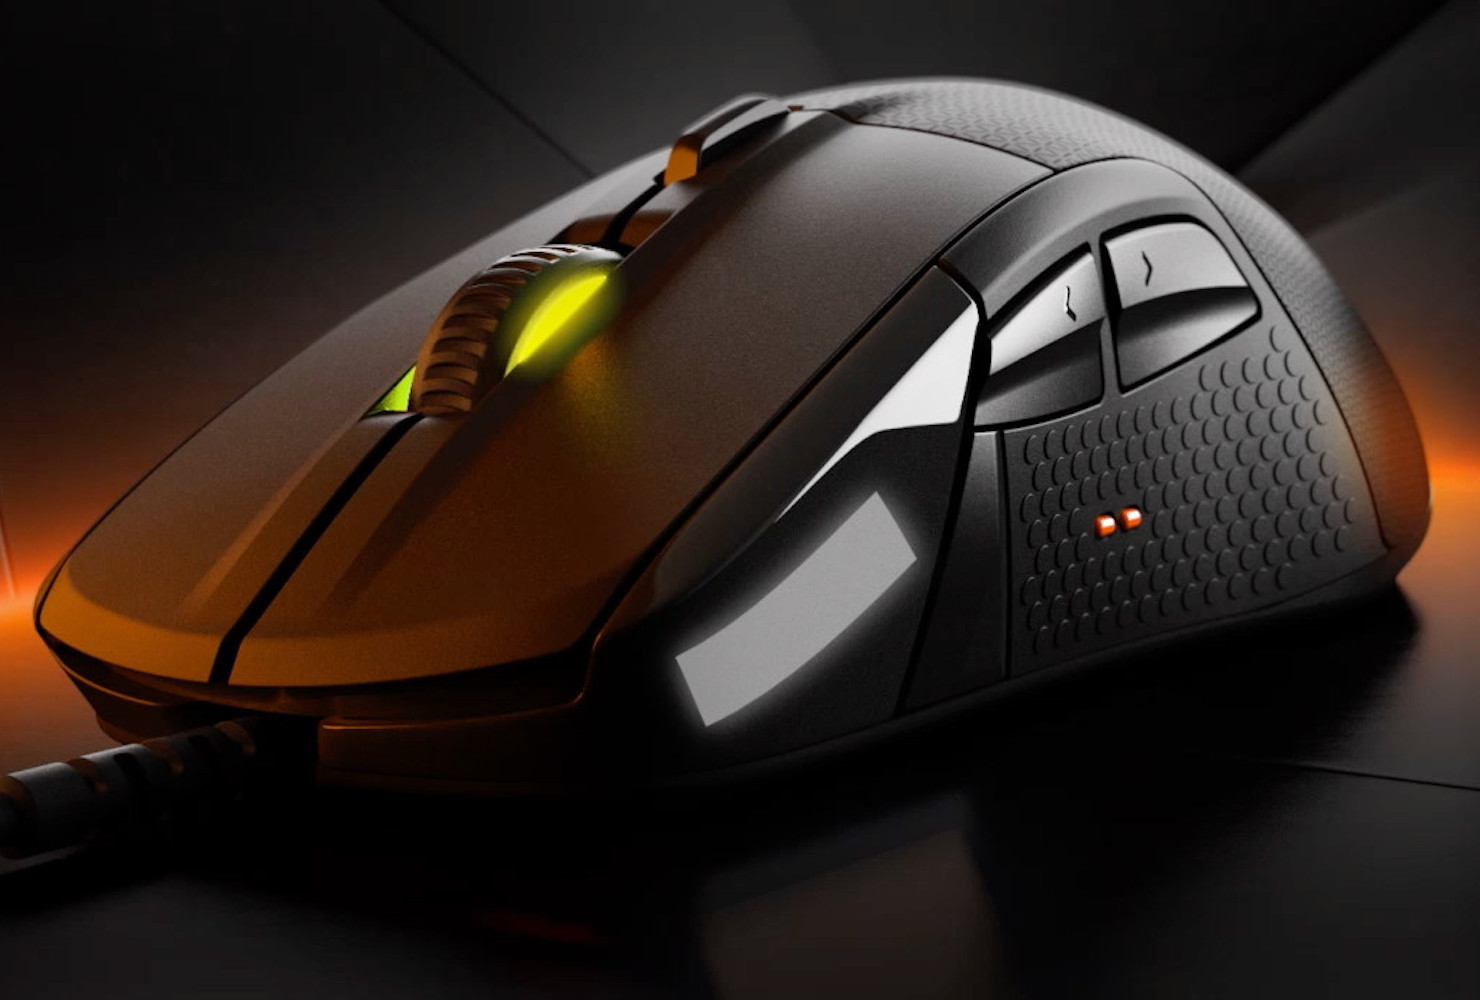 [Resim: SteelSeries-Rival-700-OLED-Gaming-Mouse-02.jpeg]